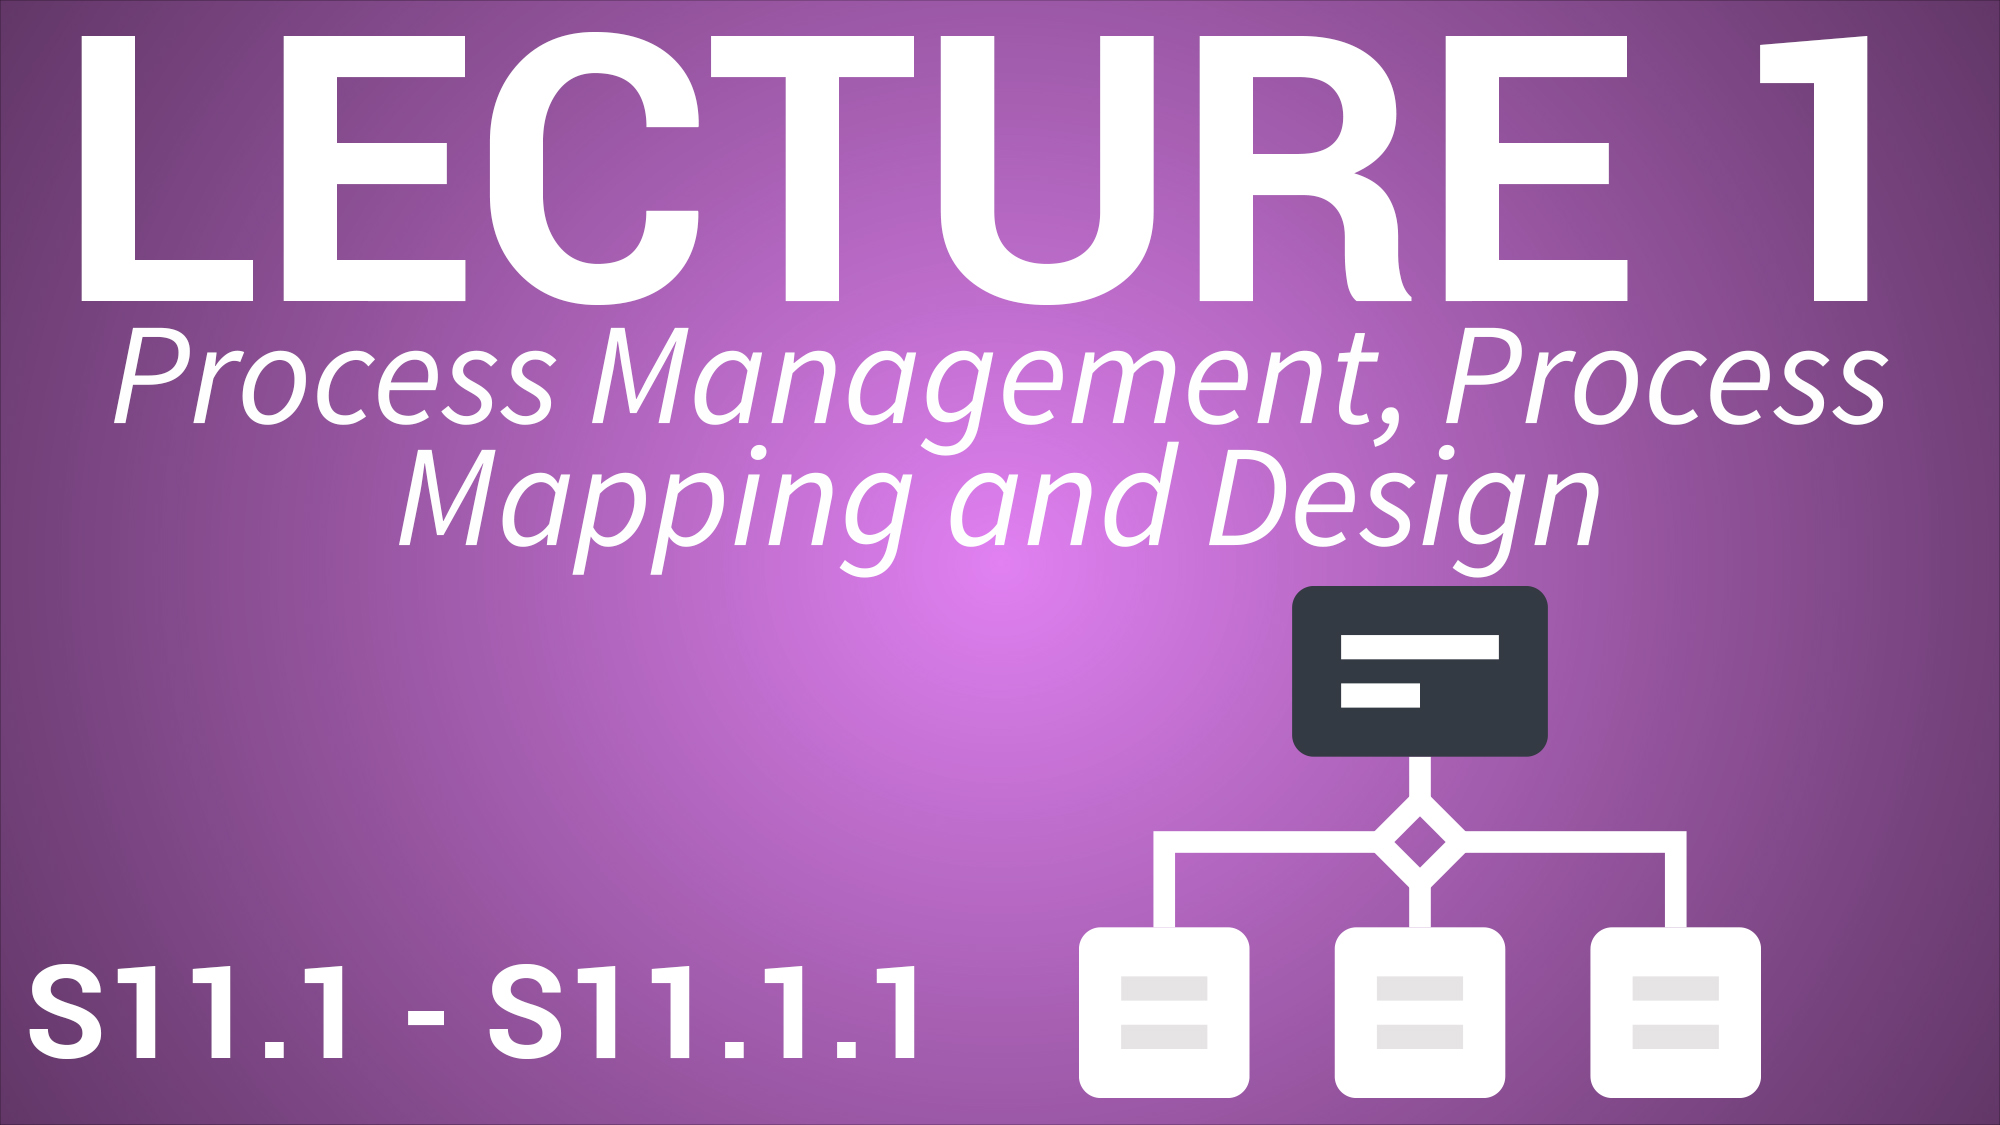 Operations Management 2 - Process Mapping & Supply Chain - Lecture 1: Process Management, Process Mapping and Design